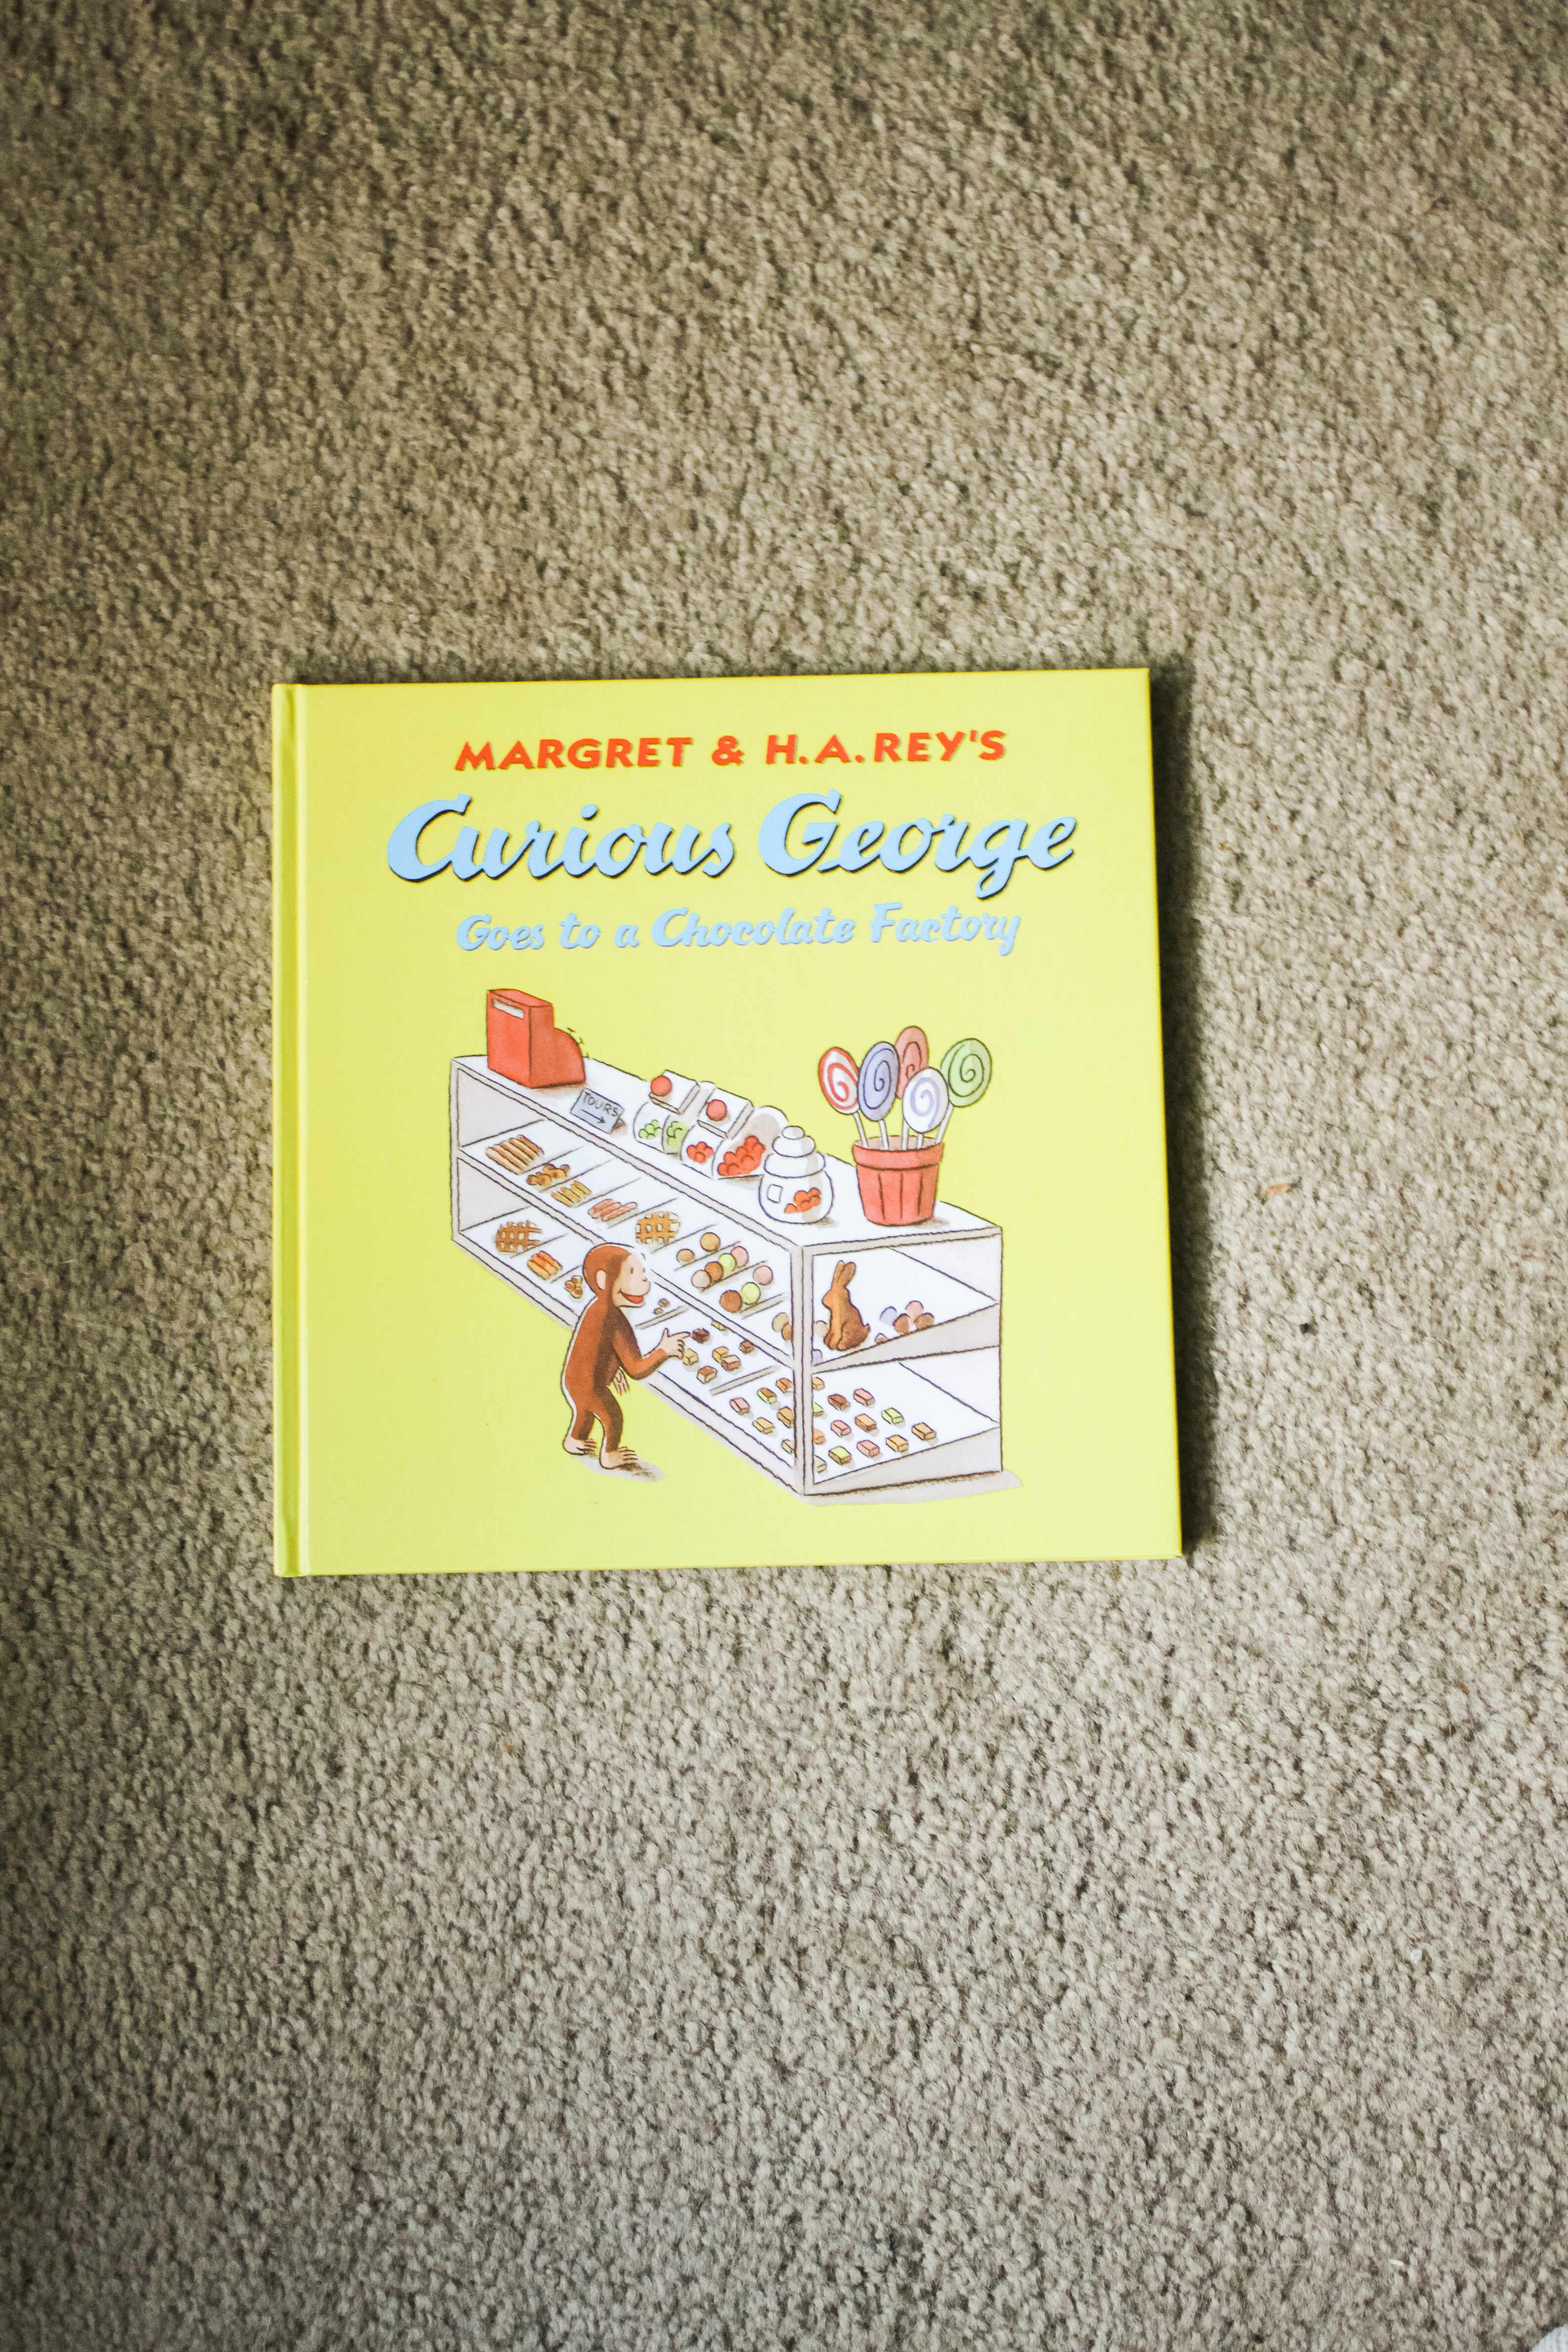 Great Family Picture Books